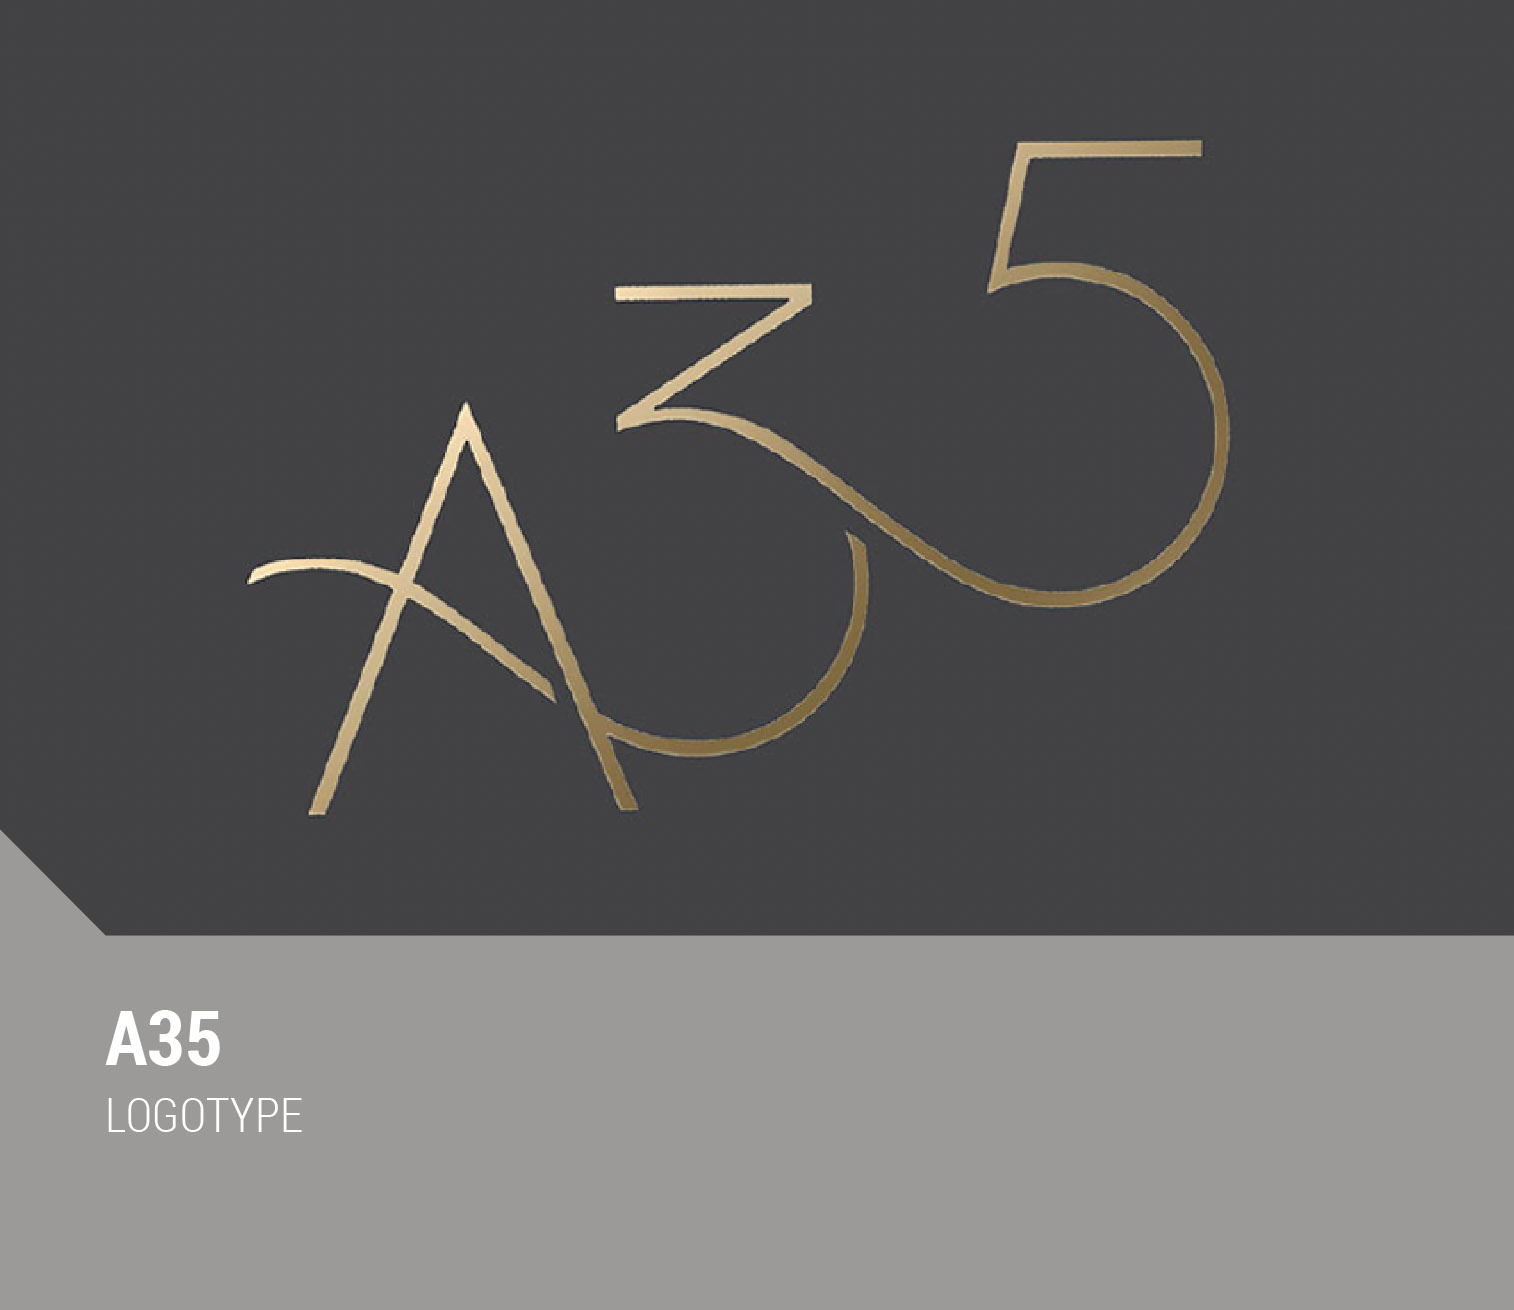 Schema Dimitra Chrona designer, creative director, architectural, 3D visualization, 3D Rendering, branding websites, digital, graphic design, interior design, real estate, luxury property, staging, museum, virtual, art, brochures, exhibitions, logotype, logo, Canada Quebec Montreal Athens Greece schema design a35 logotype small.jpg